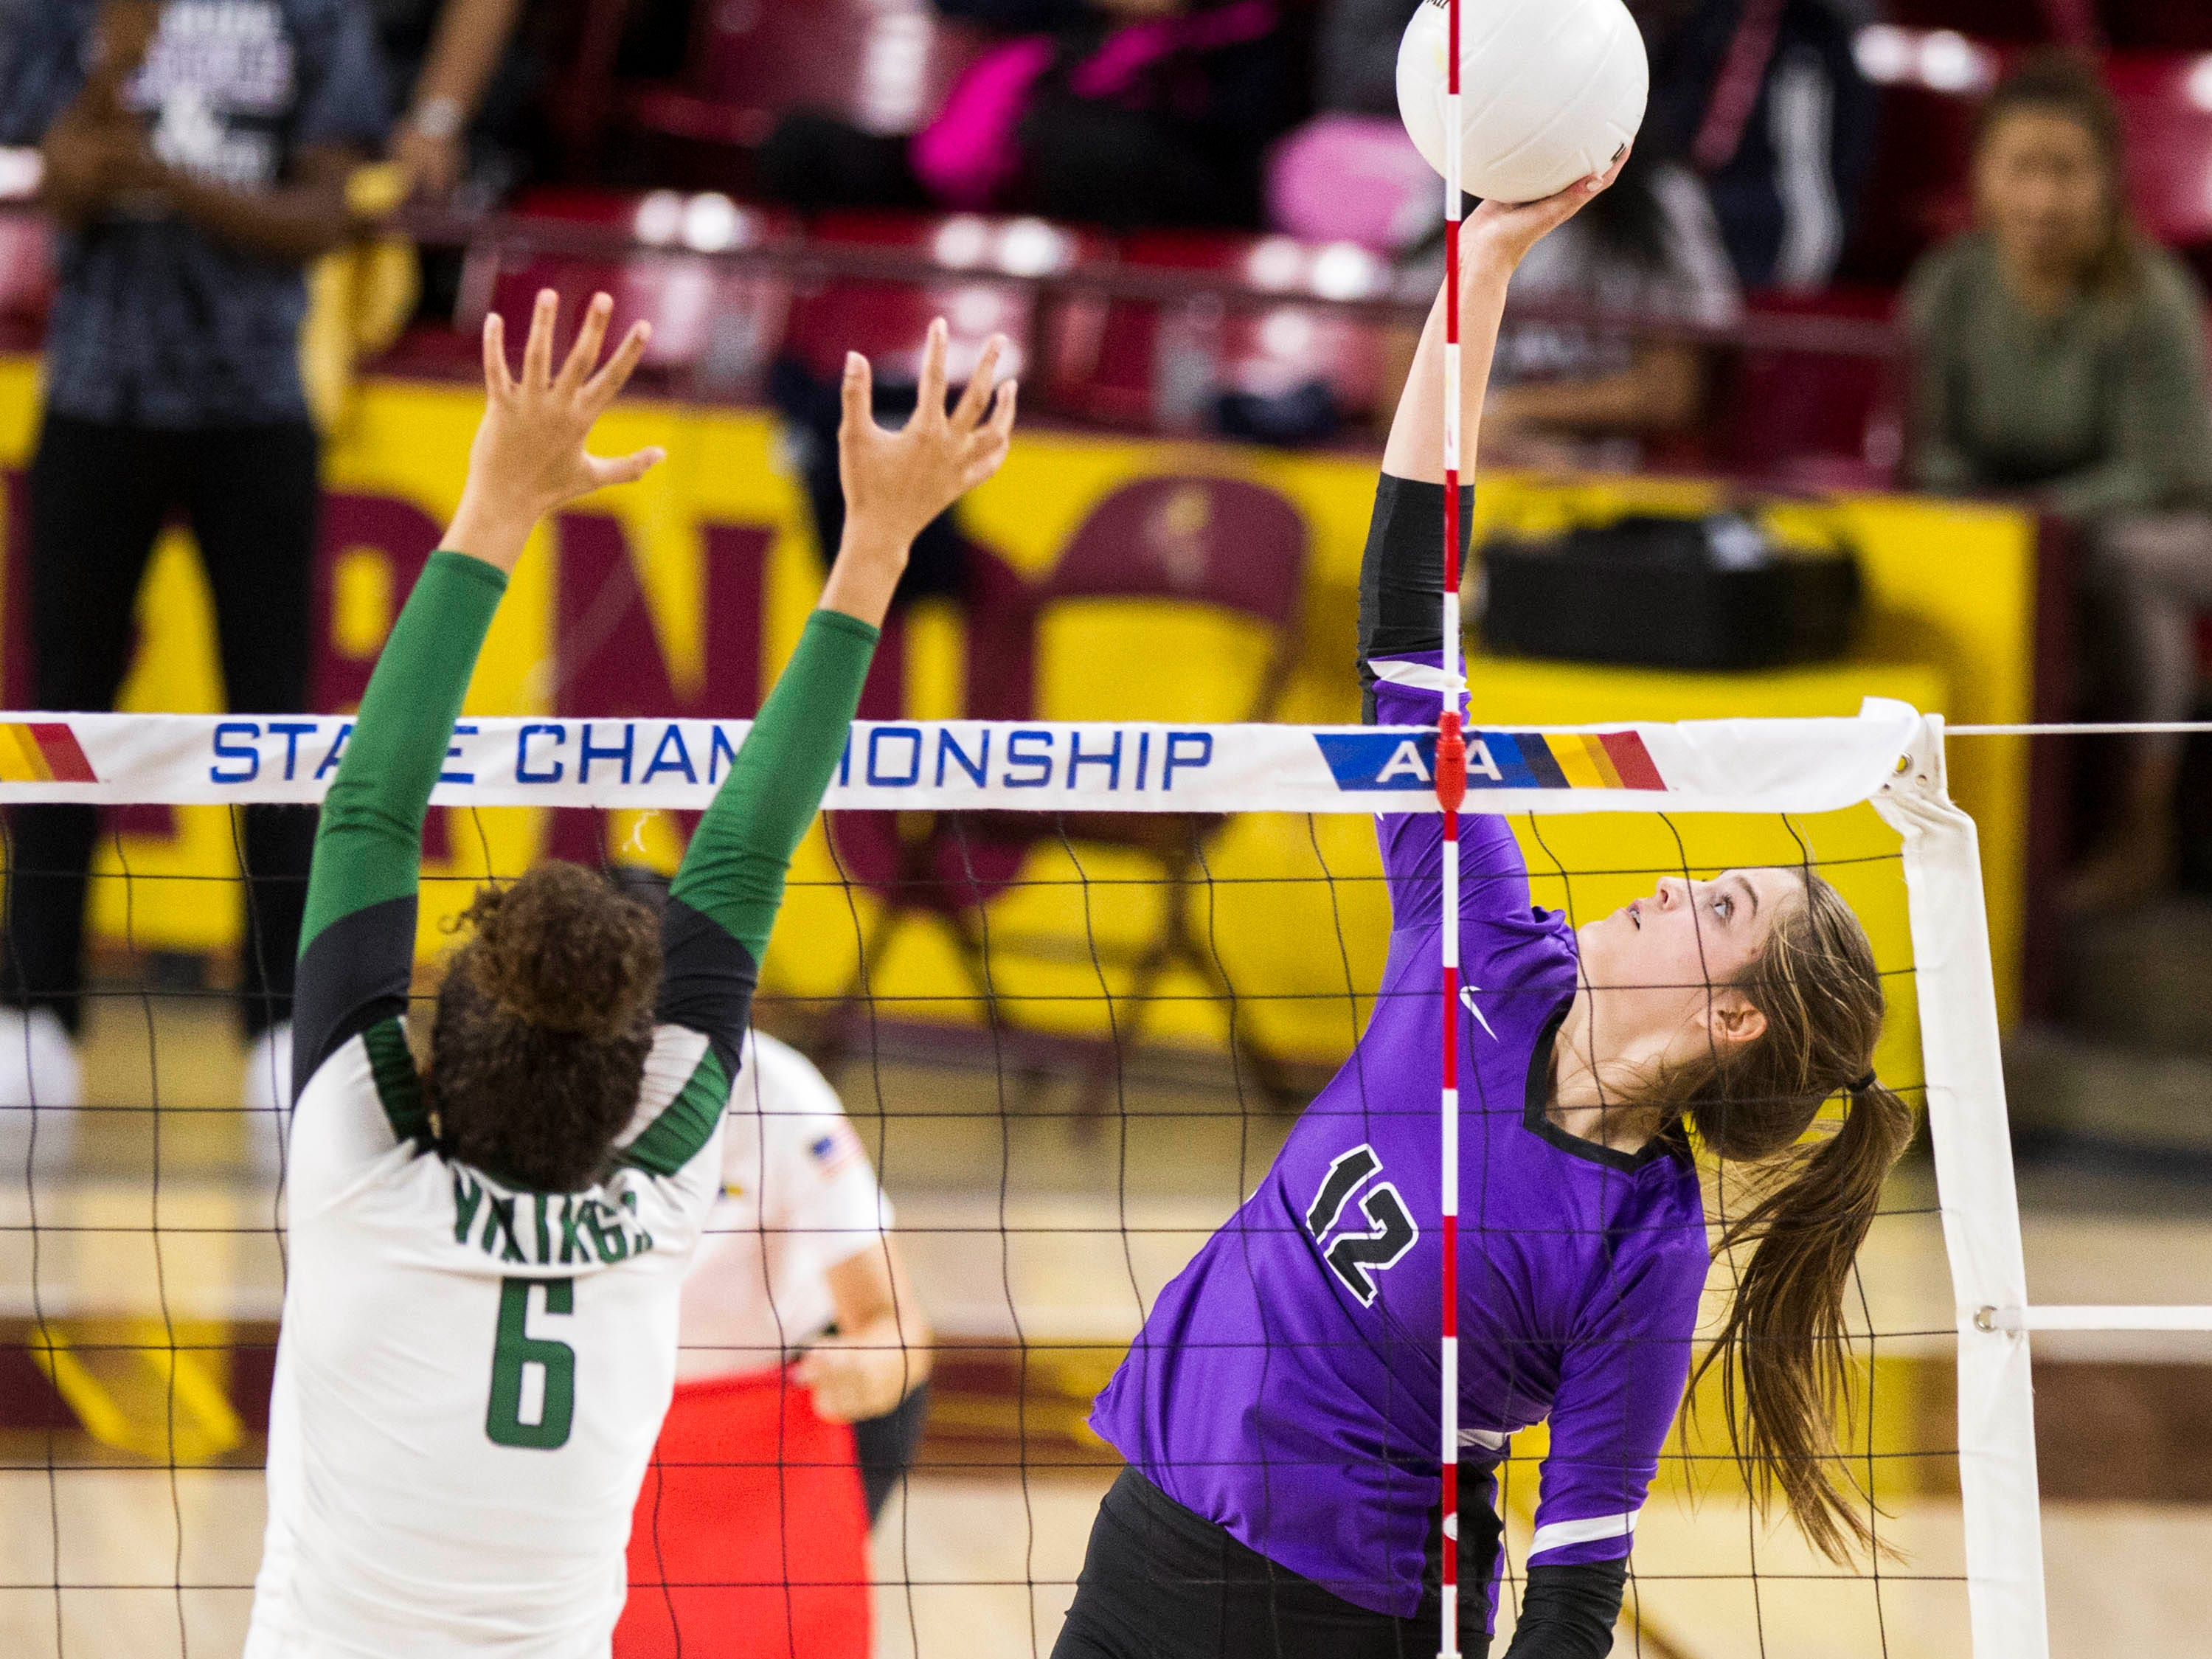 Millennium's Ashley Antoniak flips it back over the net against Sunnyslope's Madi McGill in the girls 5A volleyball state championship at Wells Fargo Arena in Tempe, Wednesday, Nov. 7, 2018.